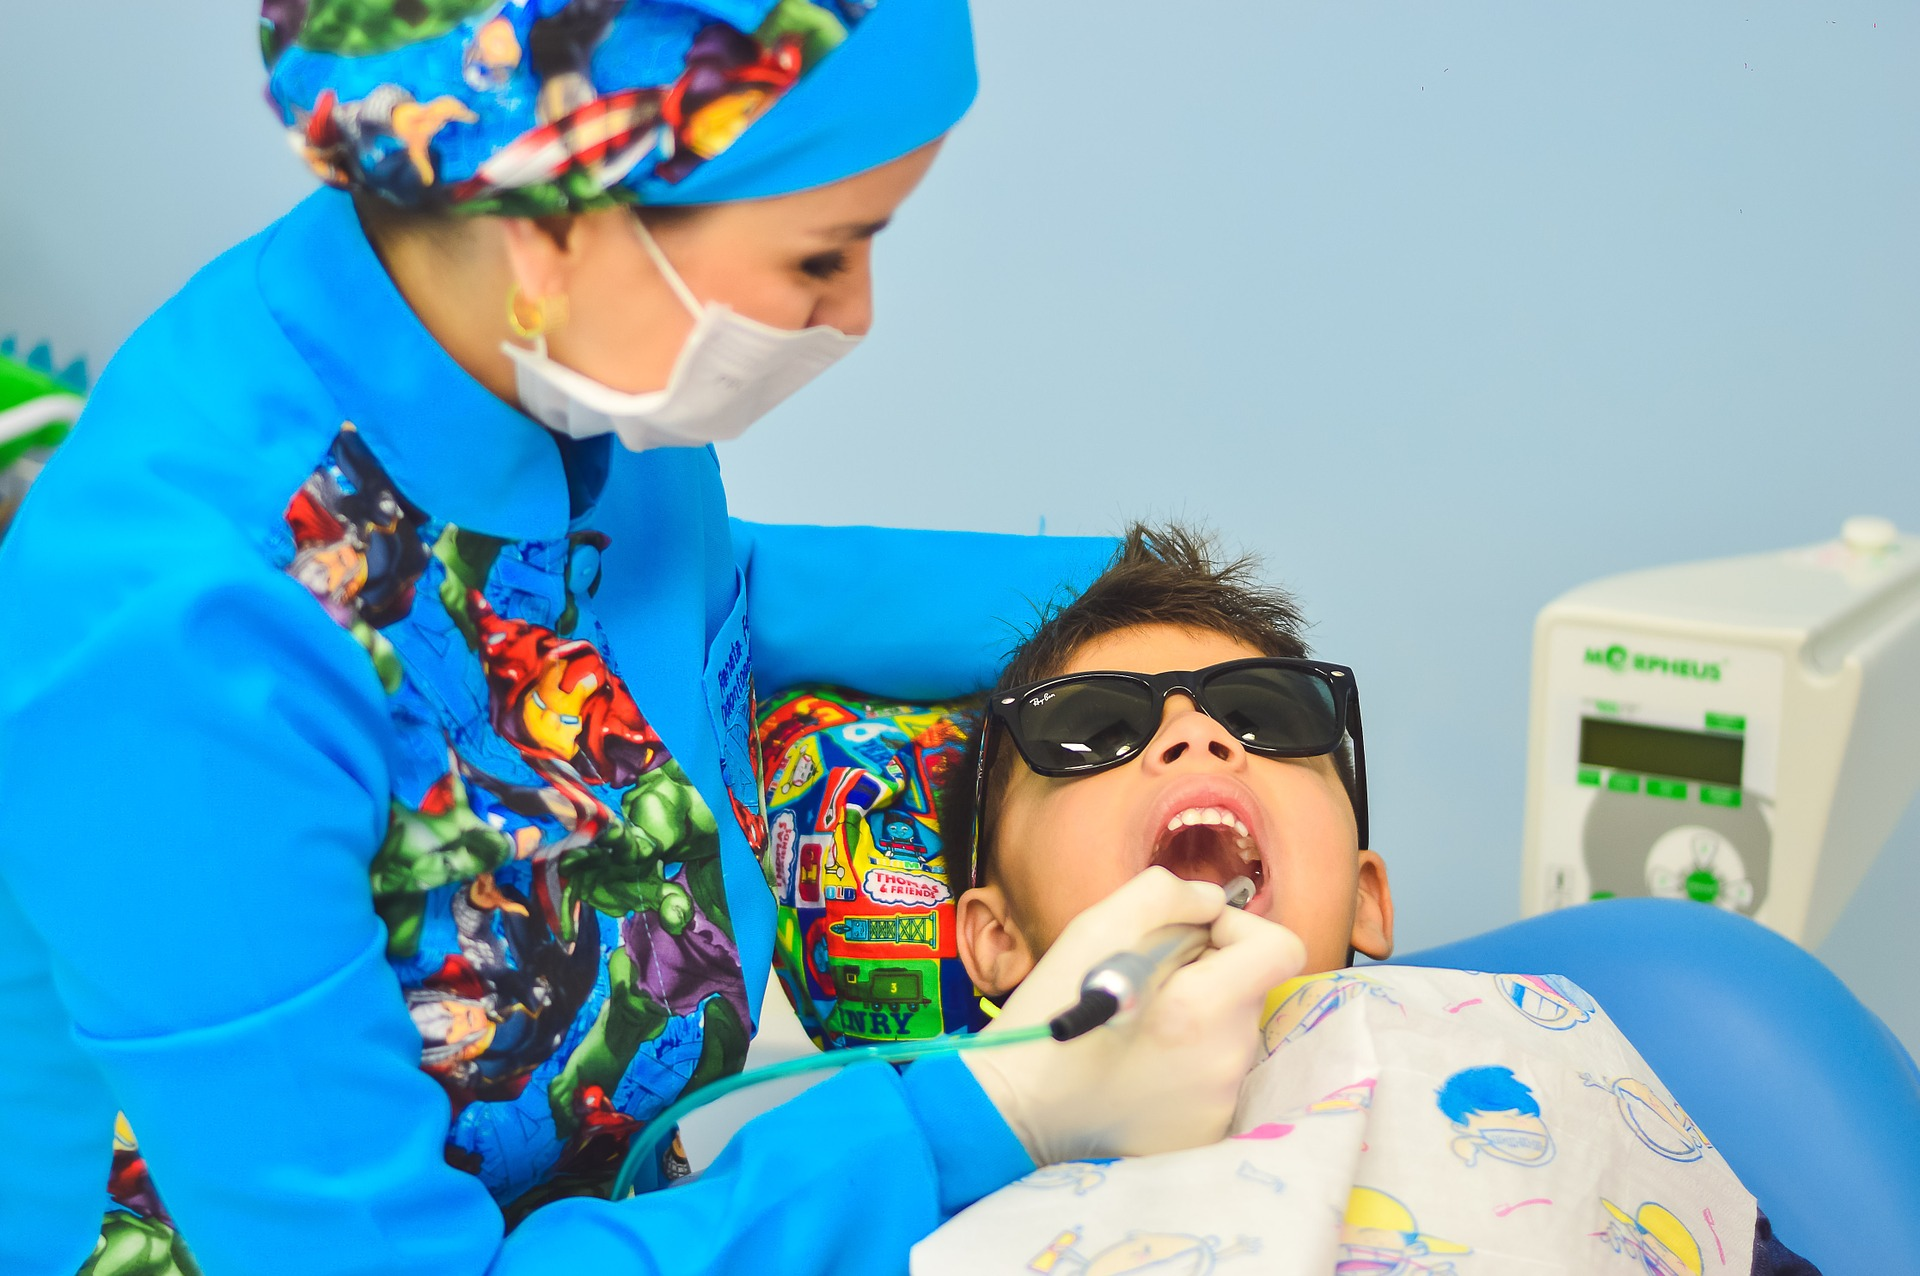 Dentist checking a patient's teeth